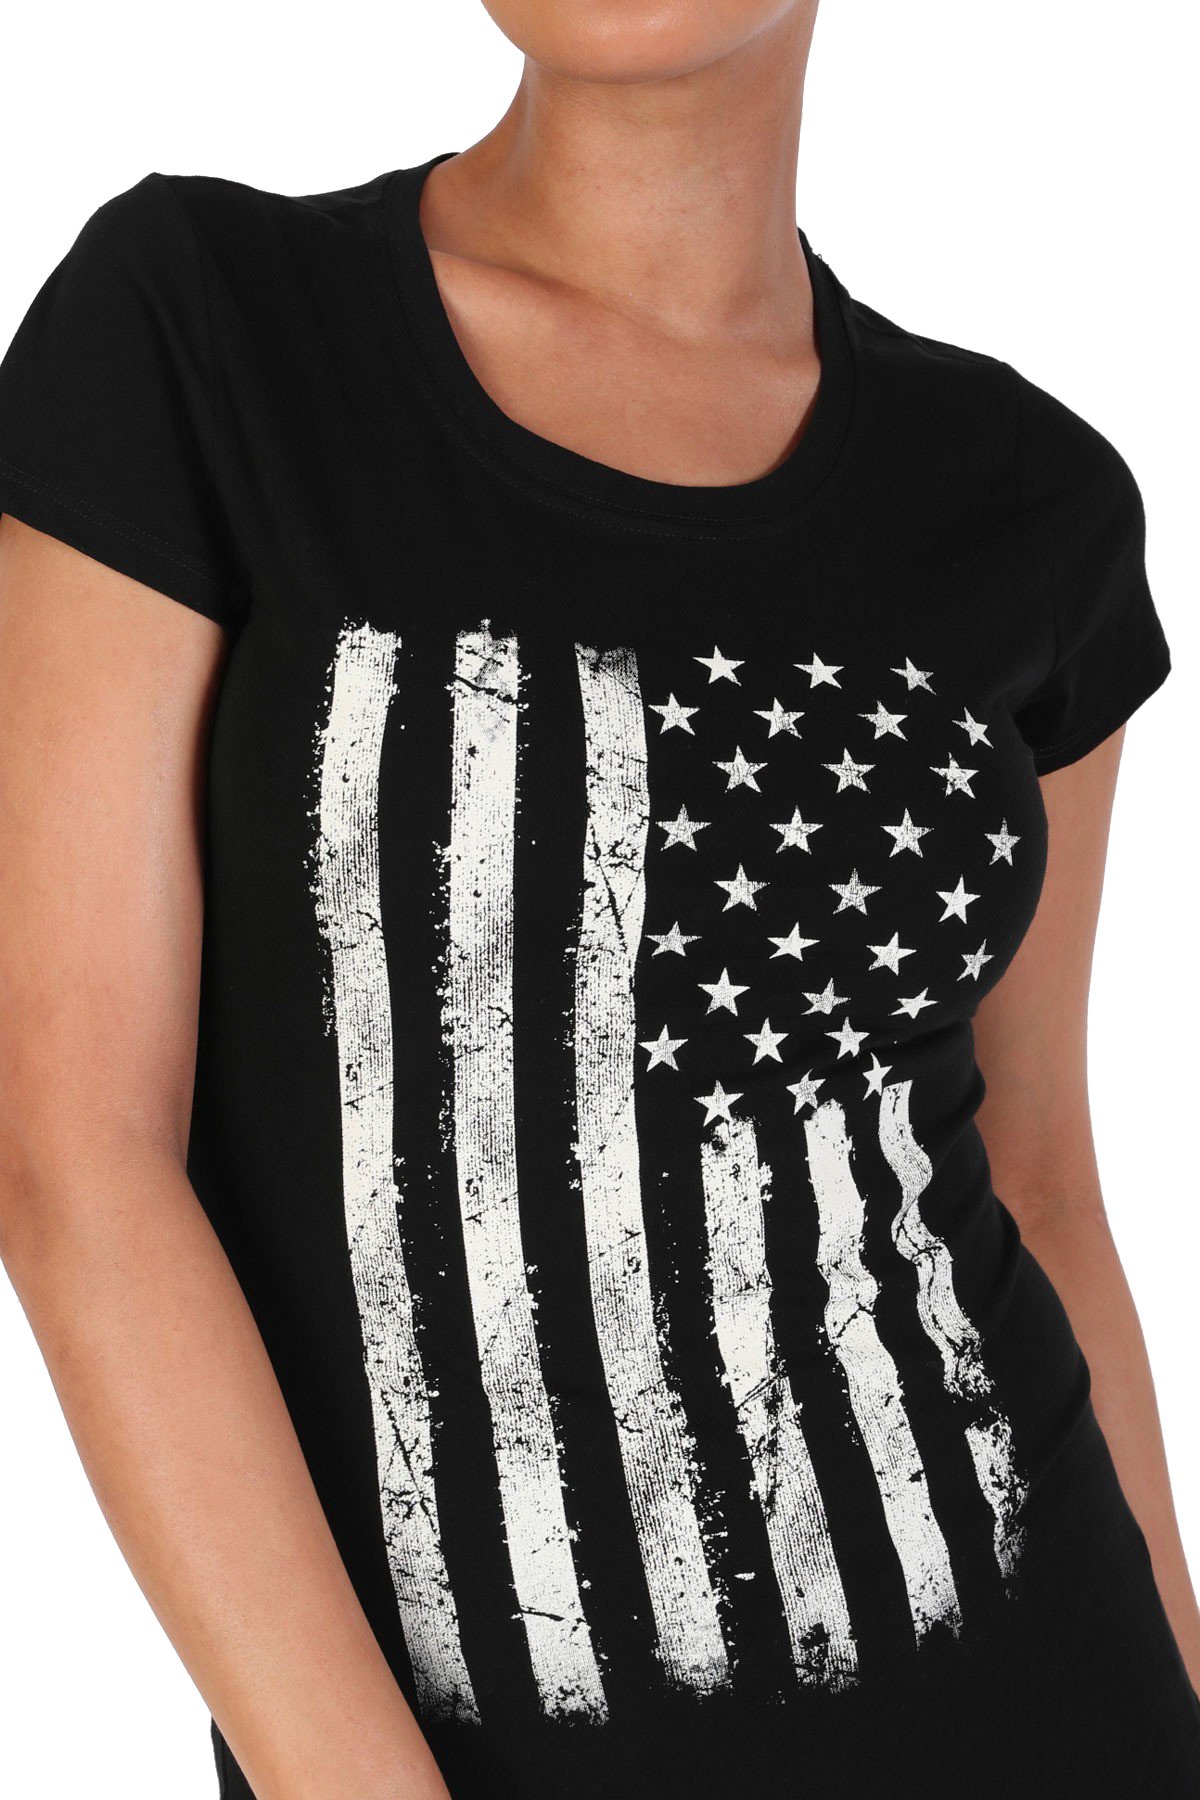 Women-039-s-Juniors-Patriotic-Casual-Graphic-Print-Short-Sleeve-T-Shirt-Top thumbnail 5